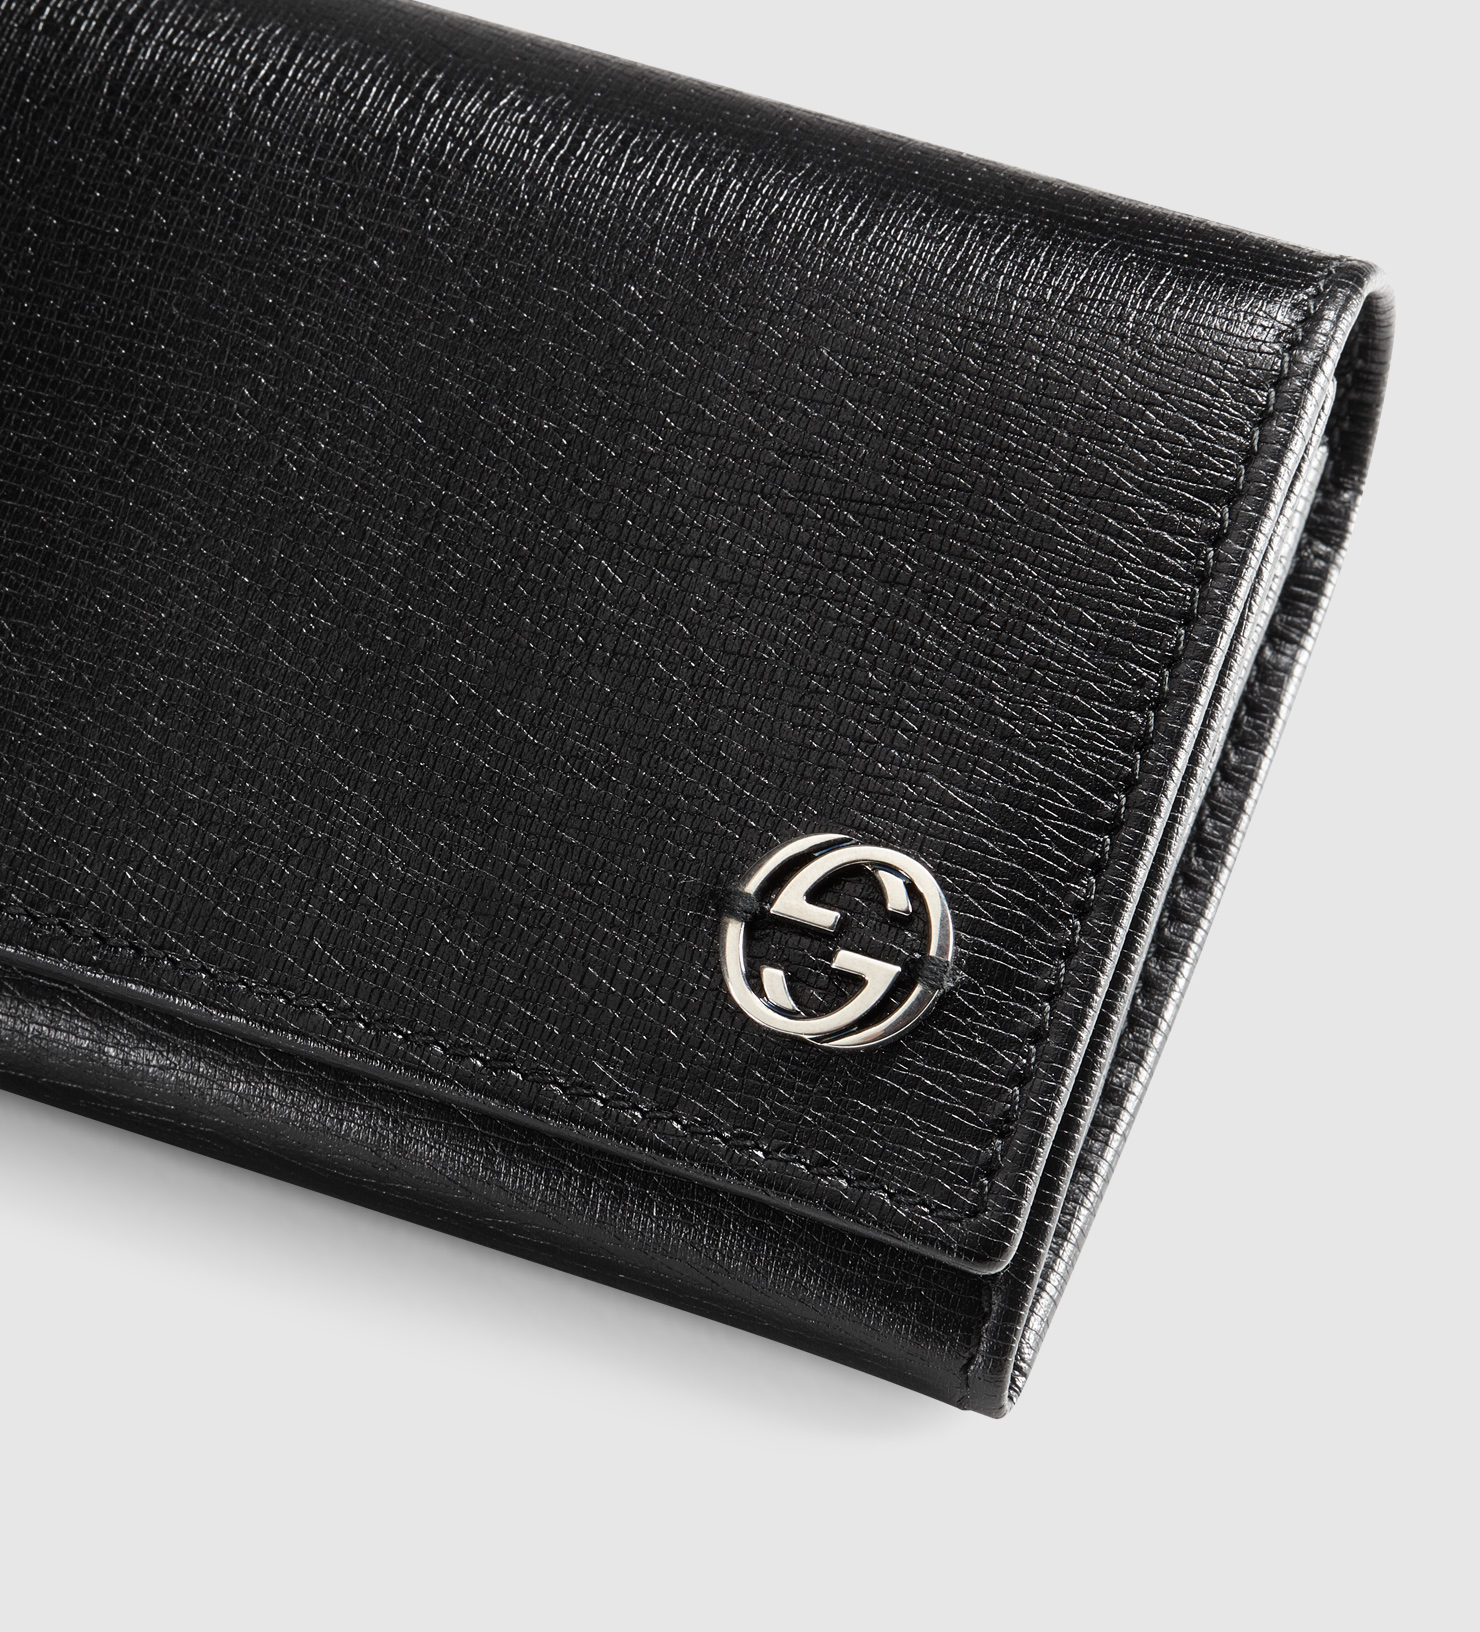 gucci leather long coin wallet with printed interior in black for men lyst. Black Bedroom Furniture Sets. Home Design Ideas